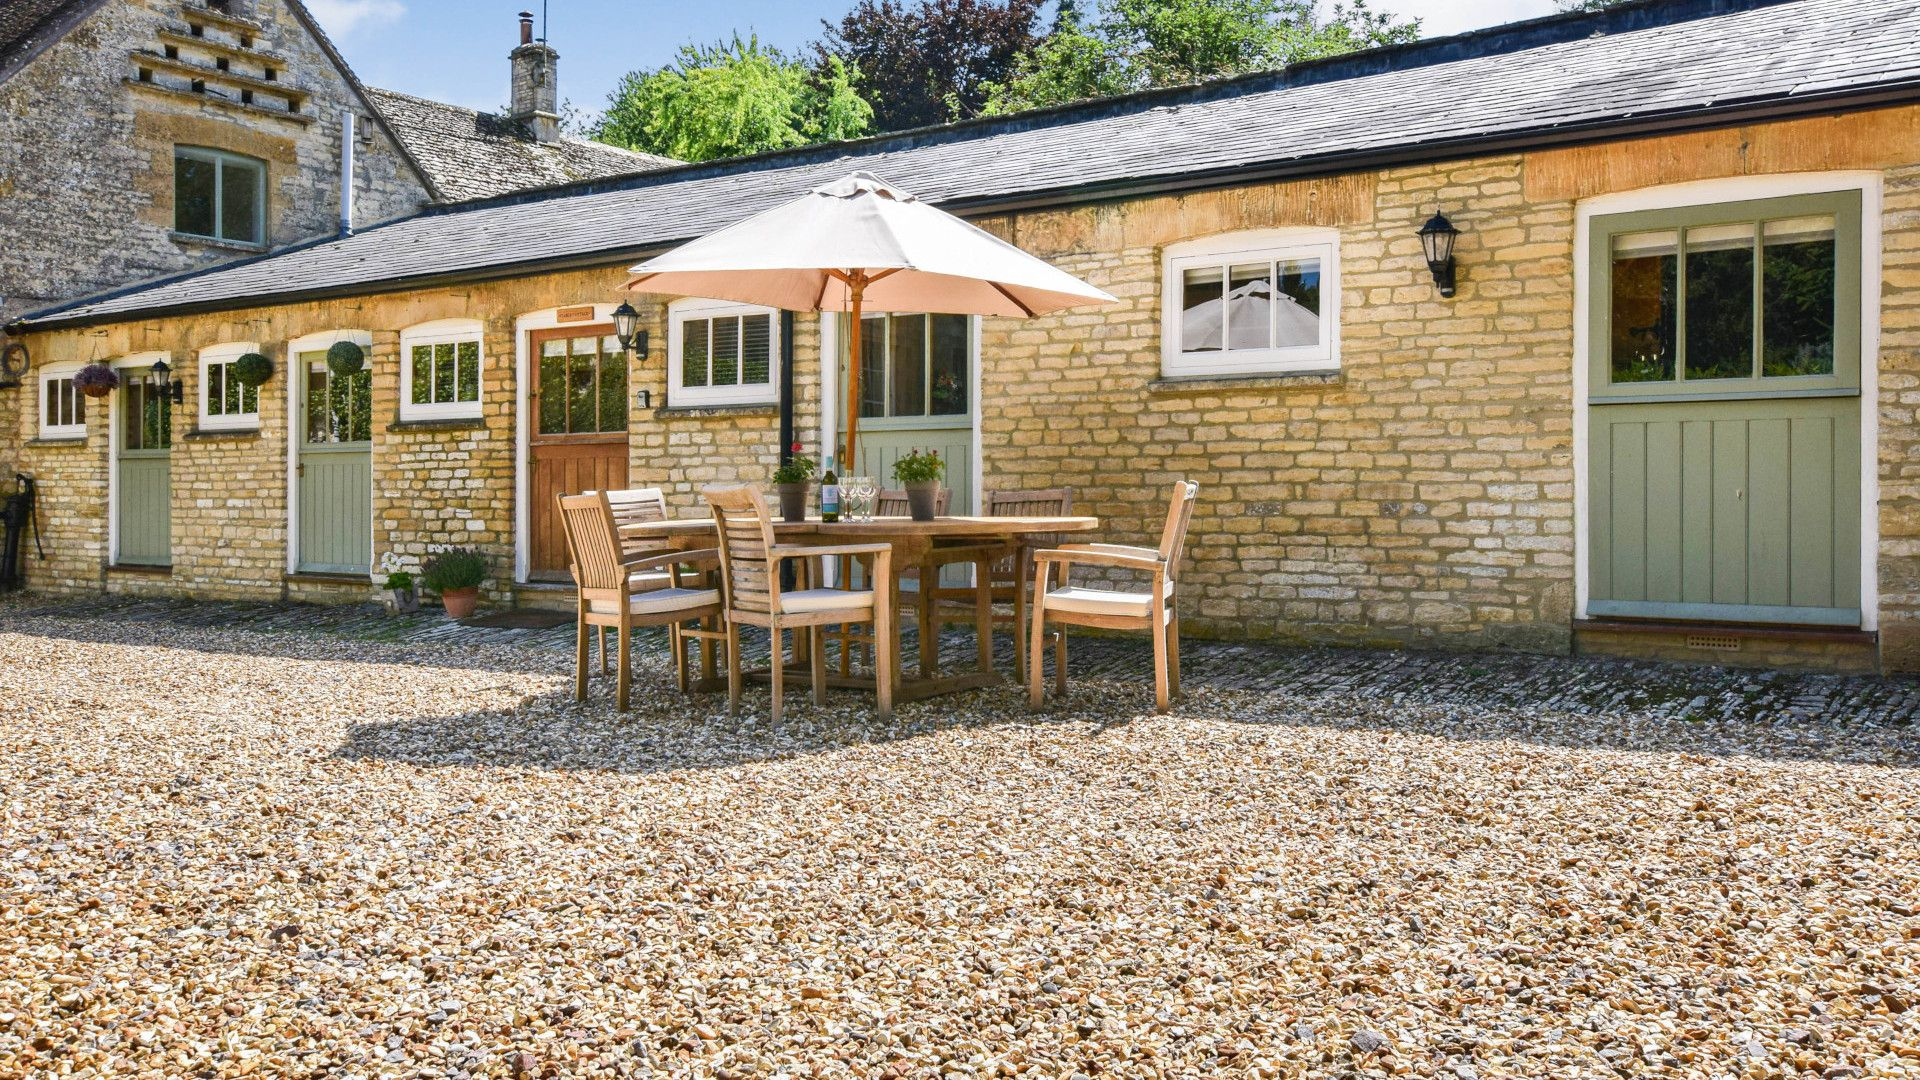 Gravel courtyard with table and chairs, Stable Cottage, Bolthole Retreats